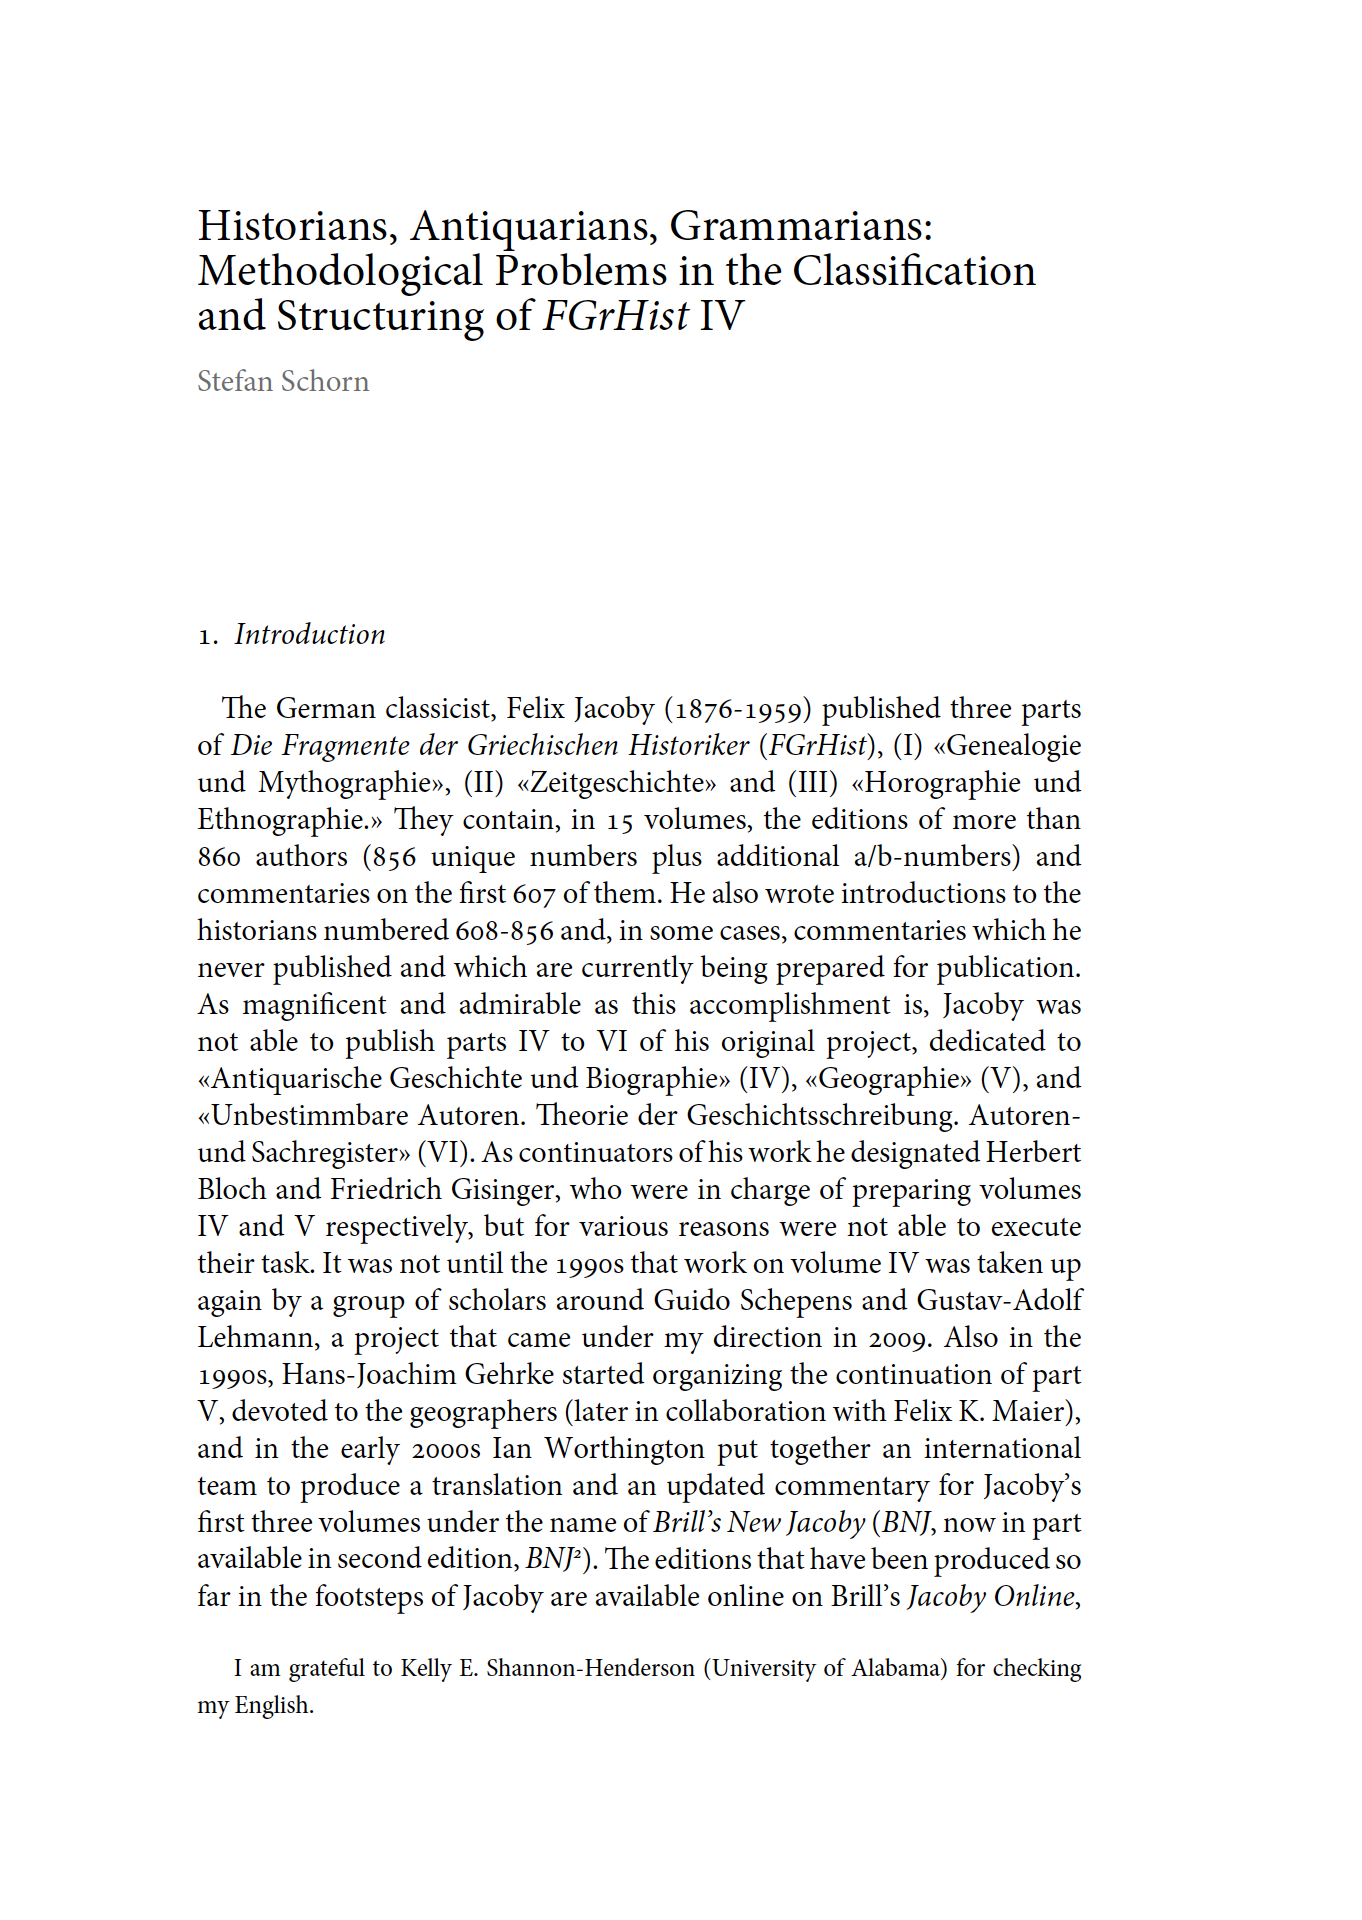 Historians, Antiquarians, Grammarians: Methodological Problems in the Classification and Structuring of FGrHist IV